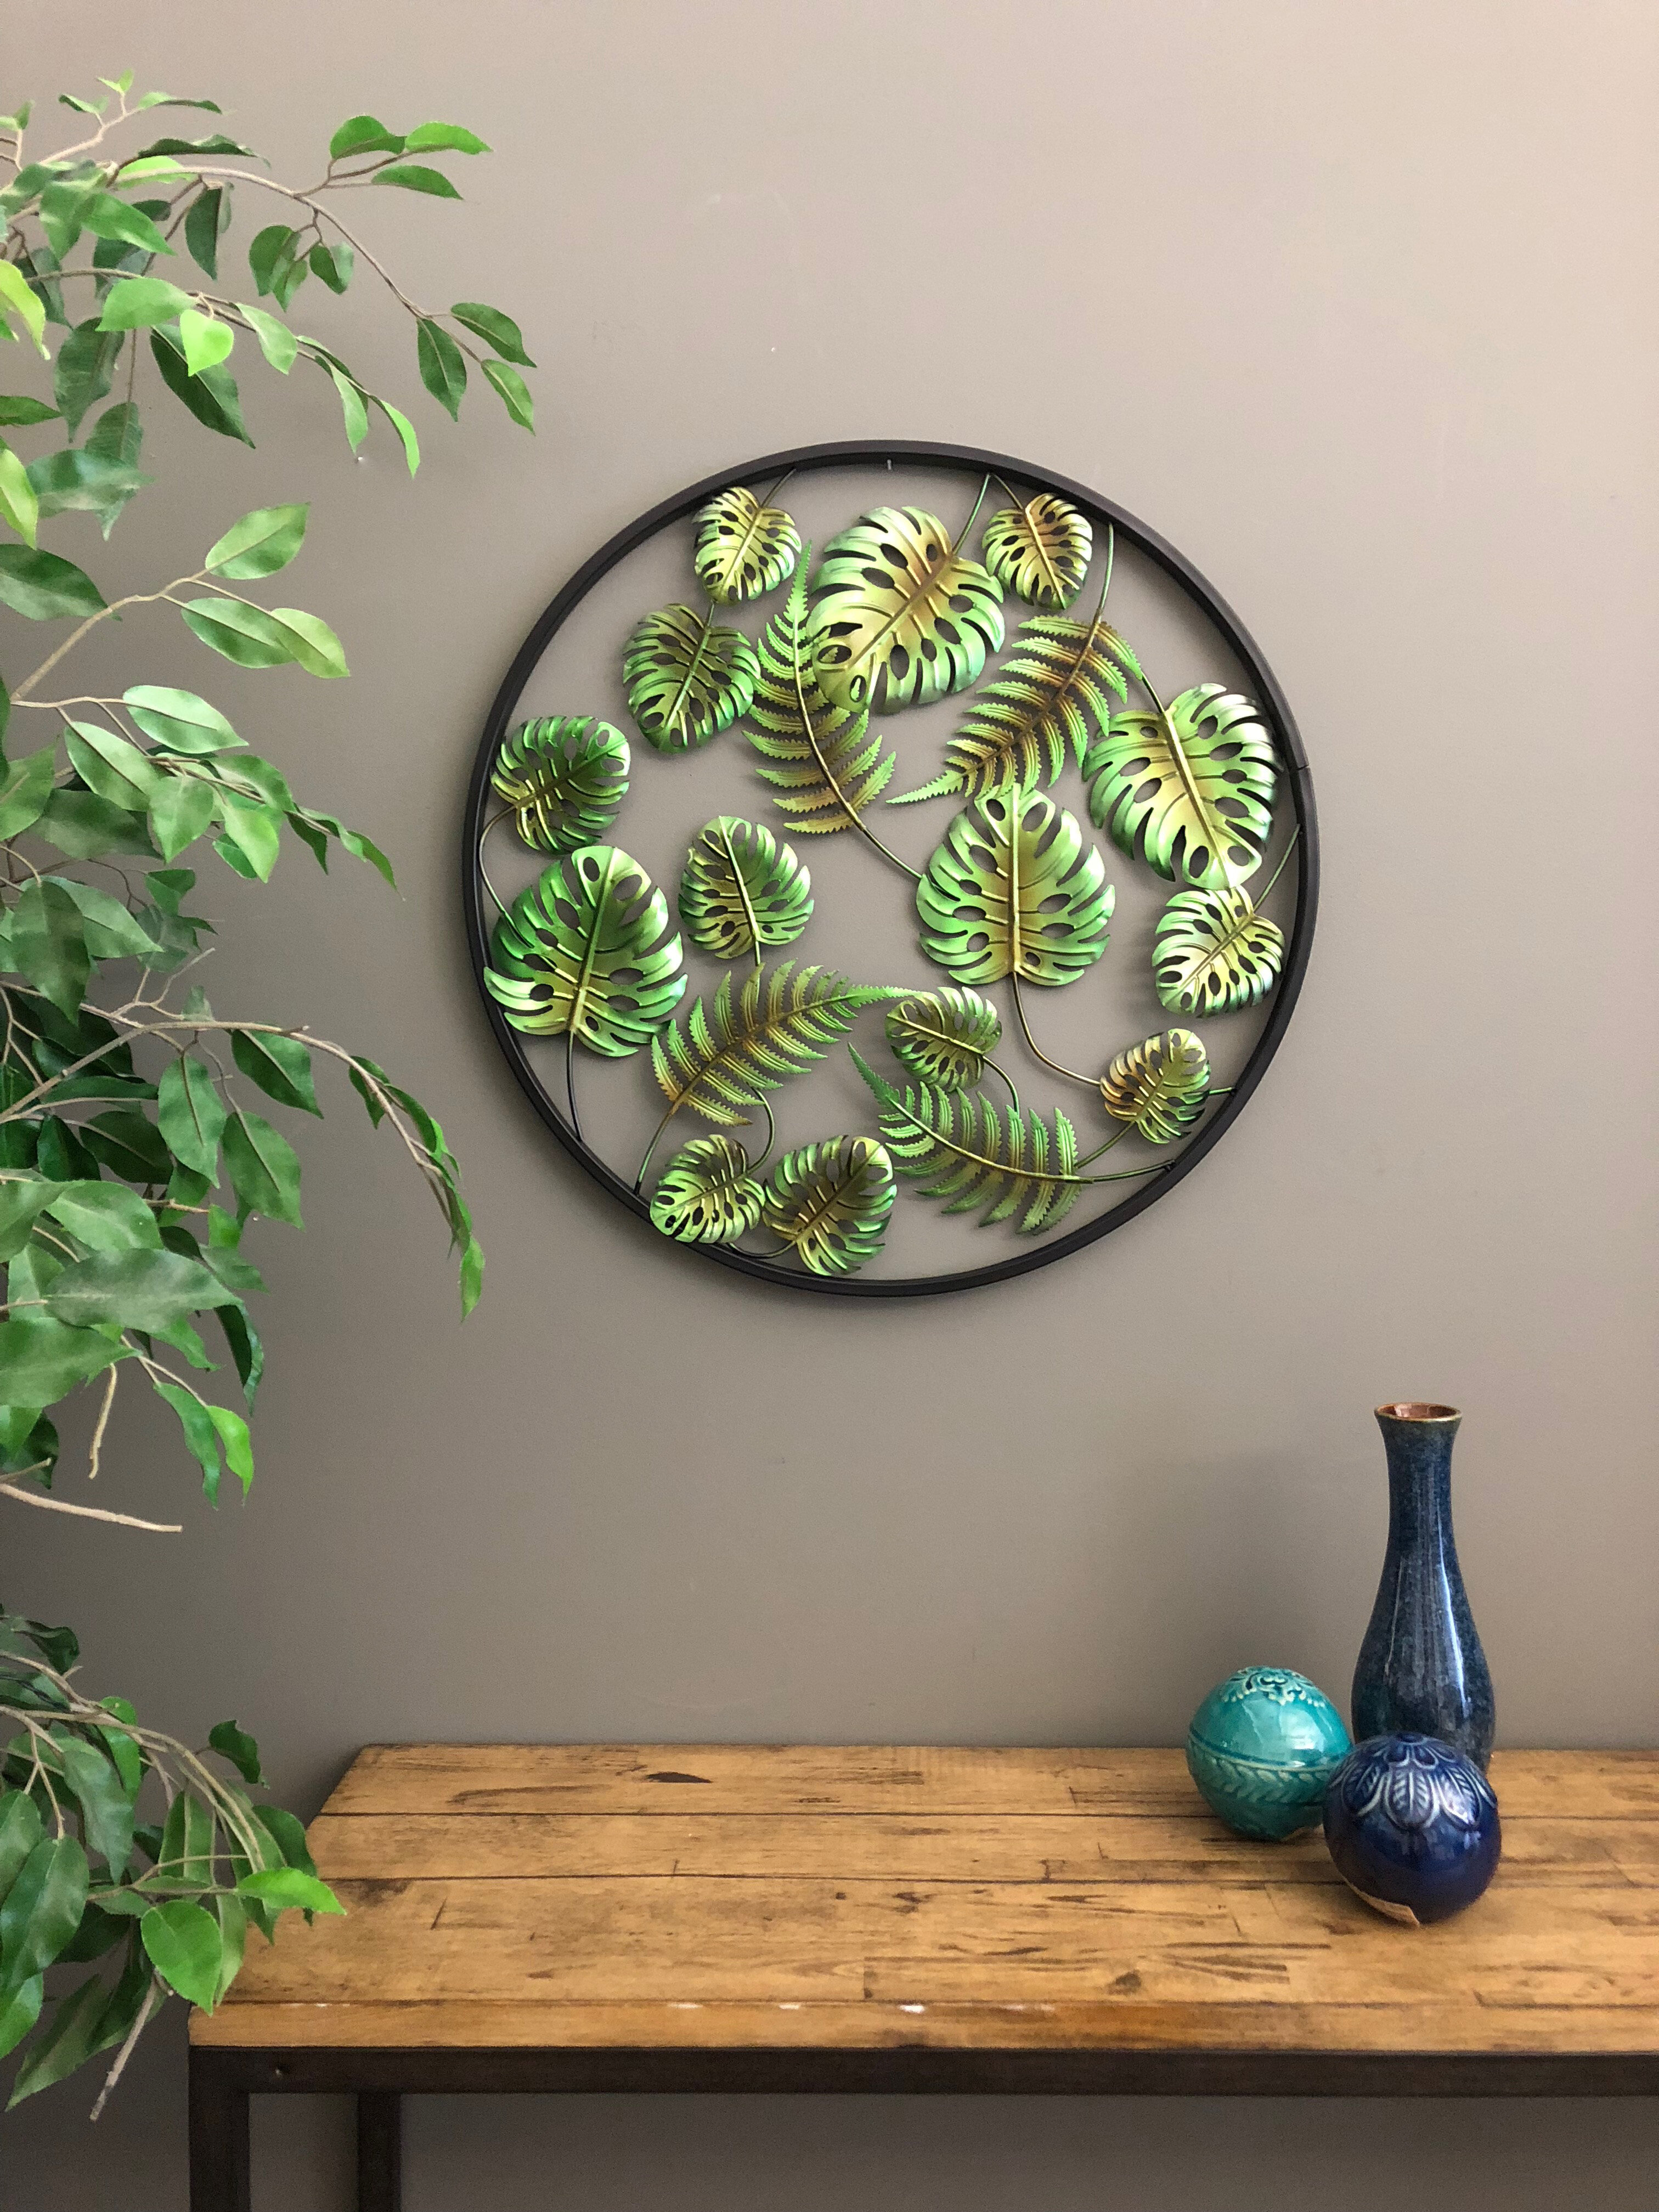 p monstera wallpaper wallcovering jibh leaf tropical decor selfadhesive adhesive palm leaves fullxfull jungle removable wall il self